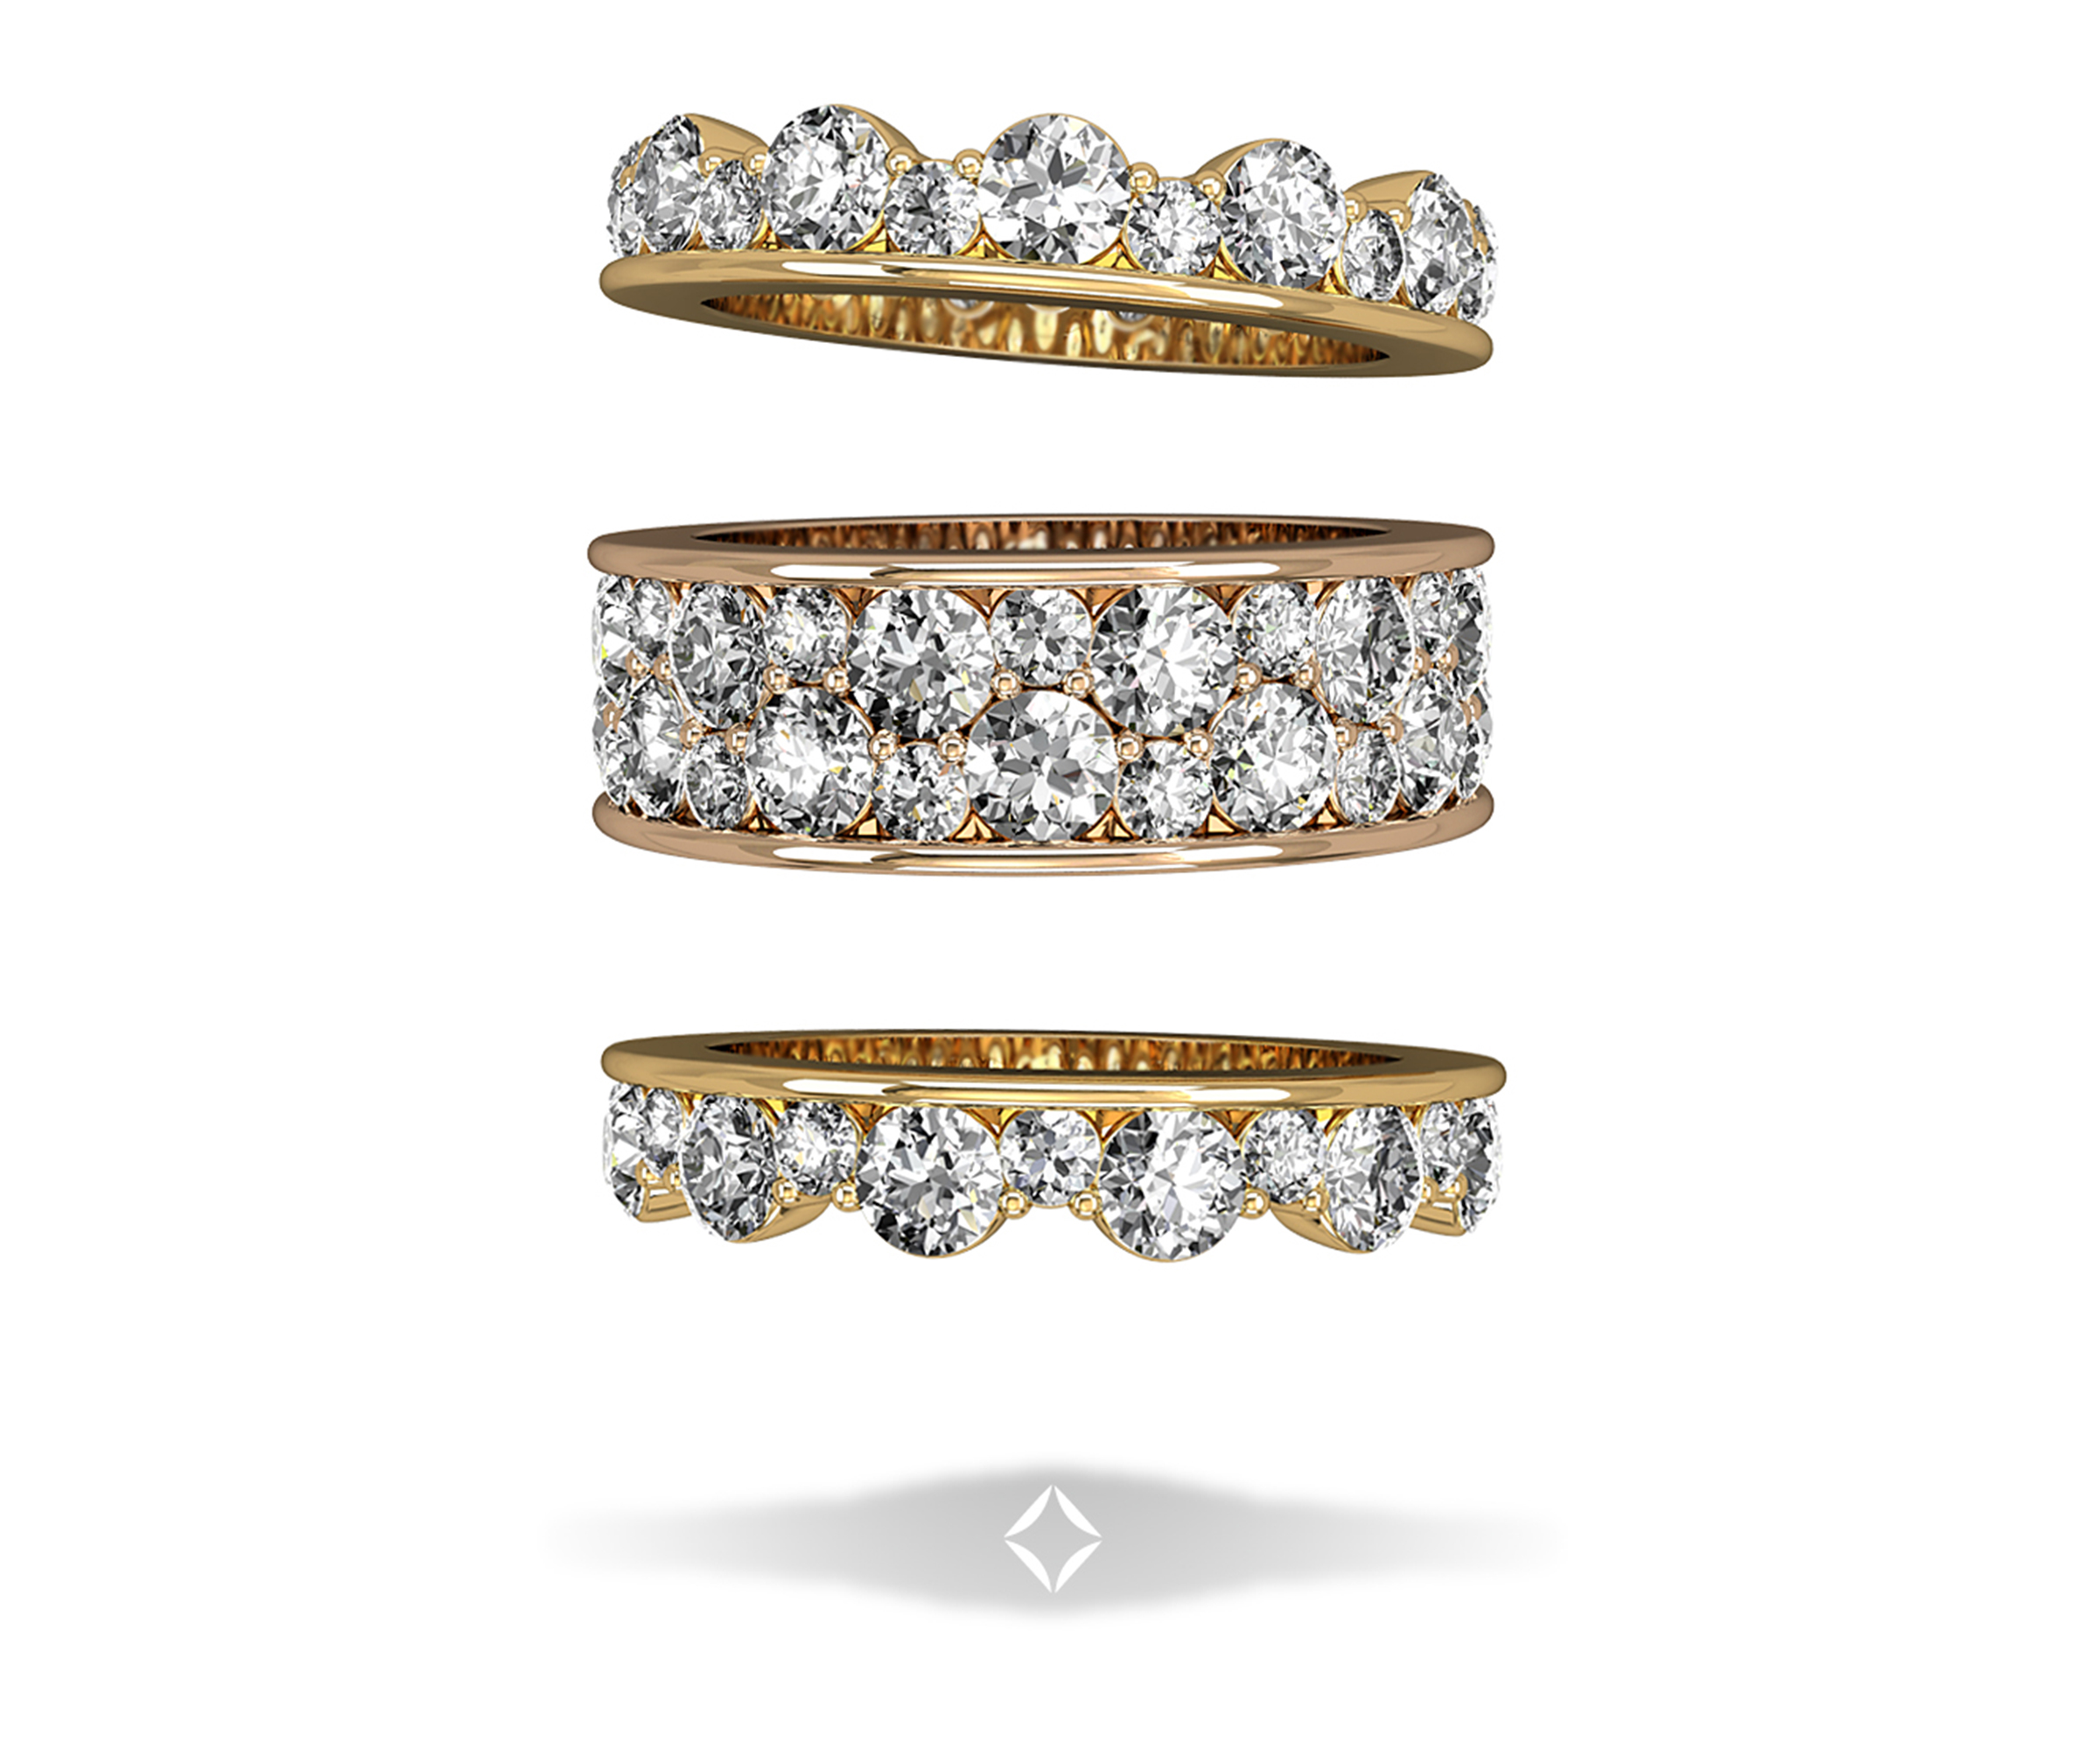 integre diamond bridal jewelry stackable wedding bands Stackable Yellow and Rose Gold Diamond Wedding Bands by Integr